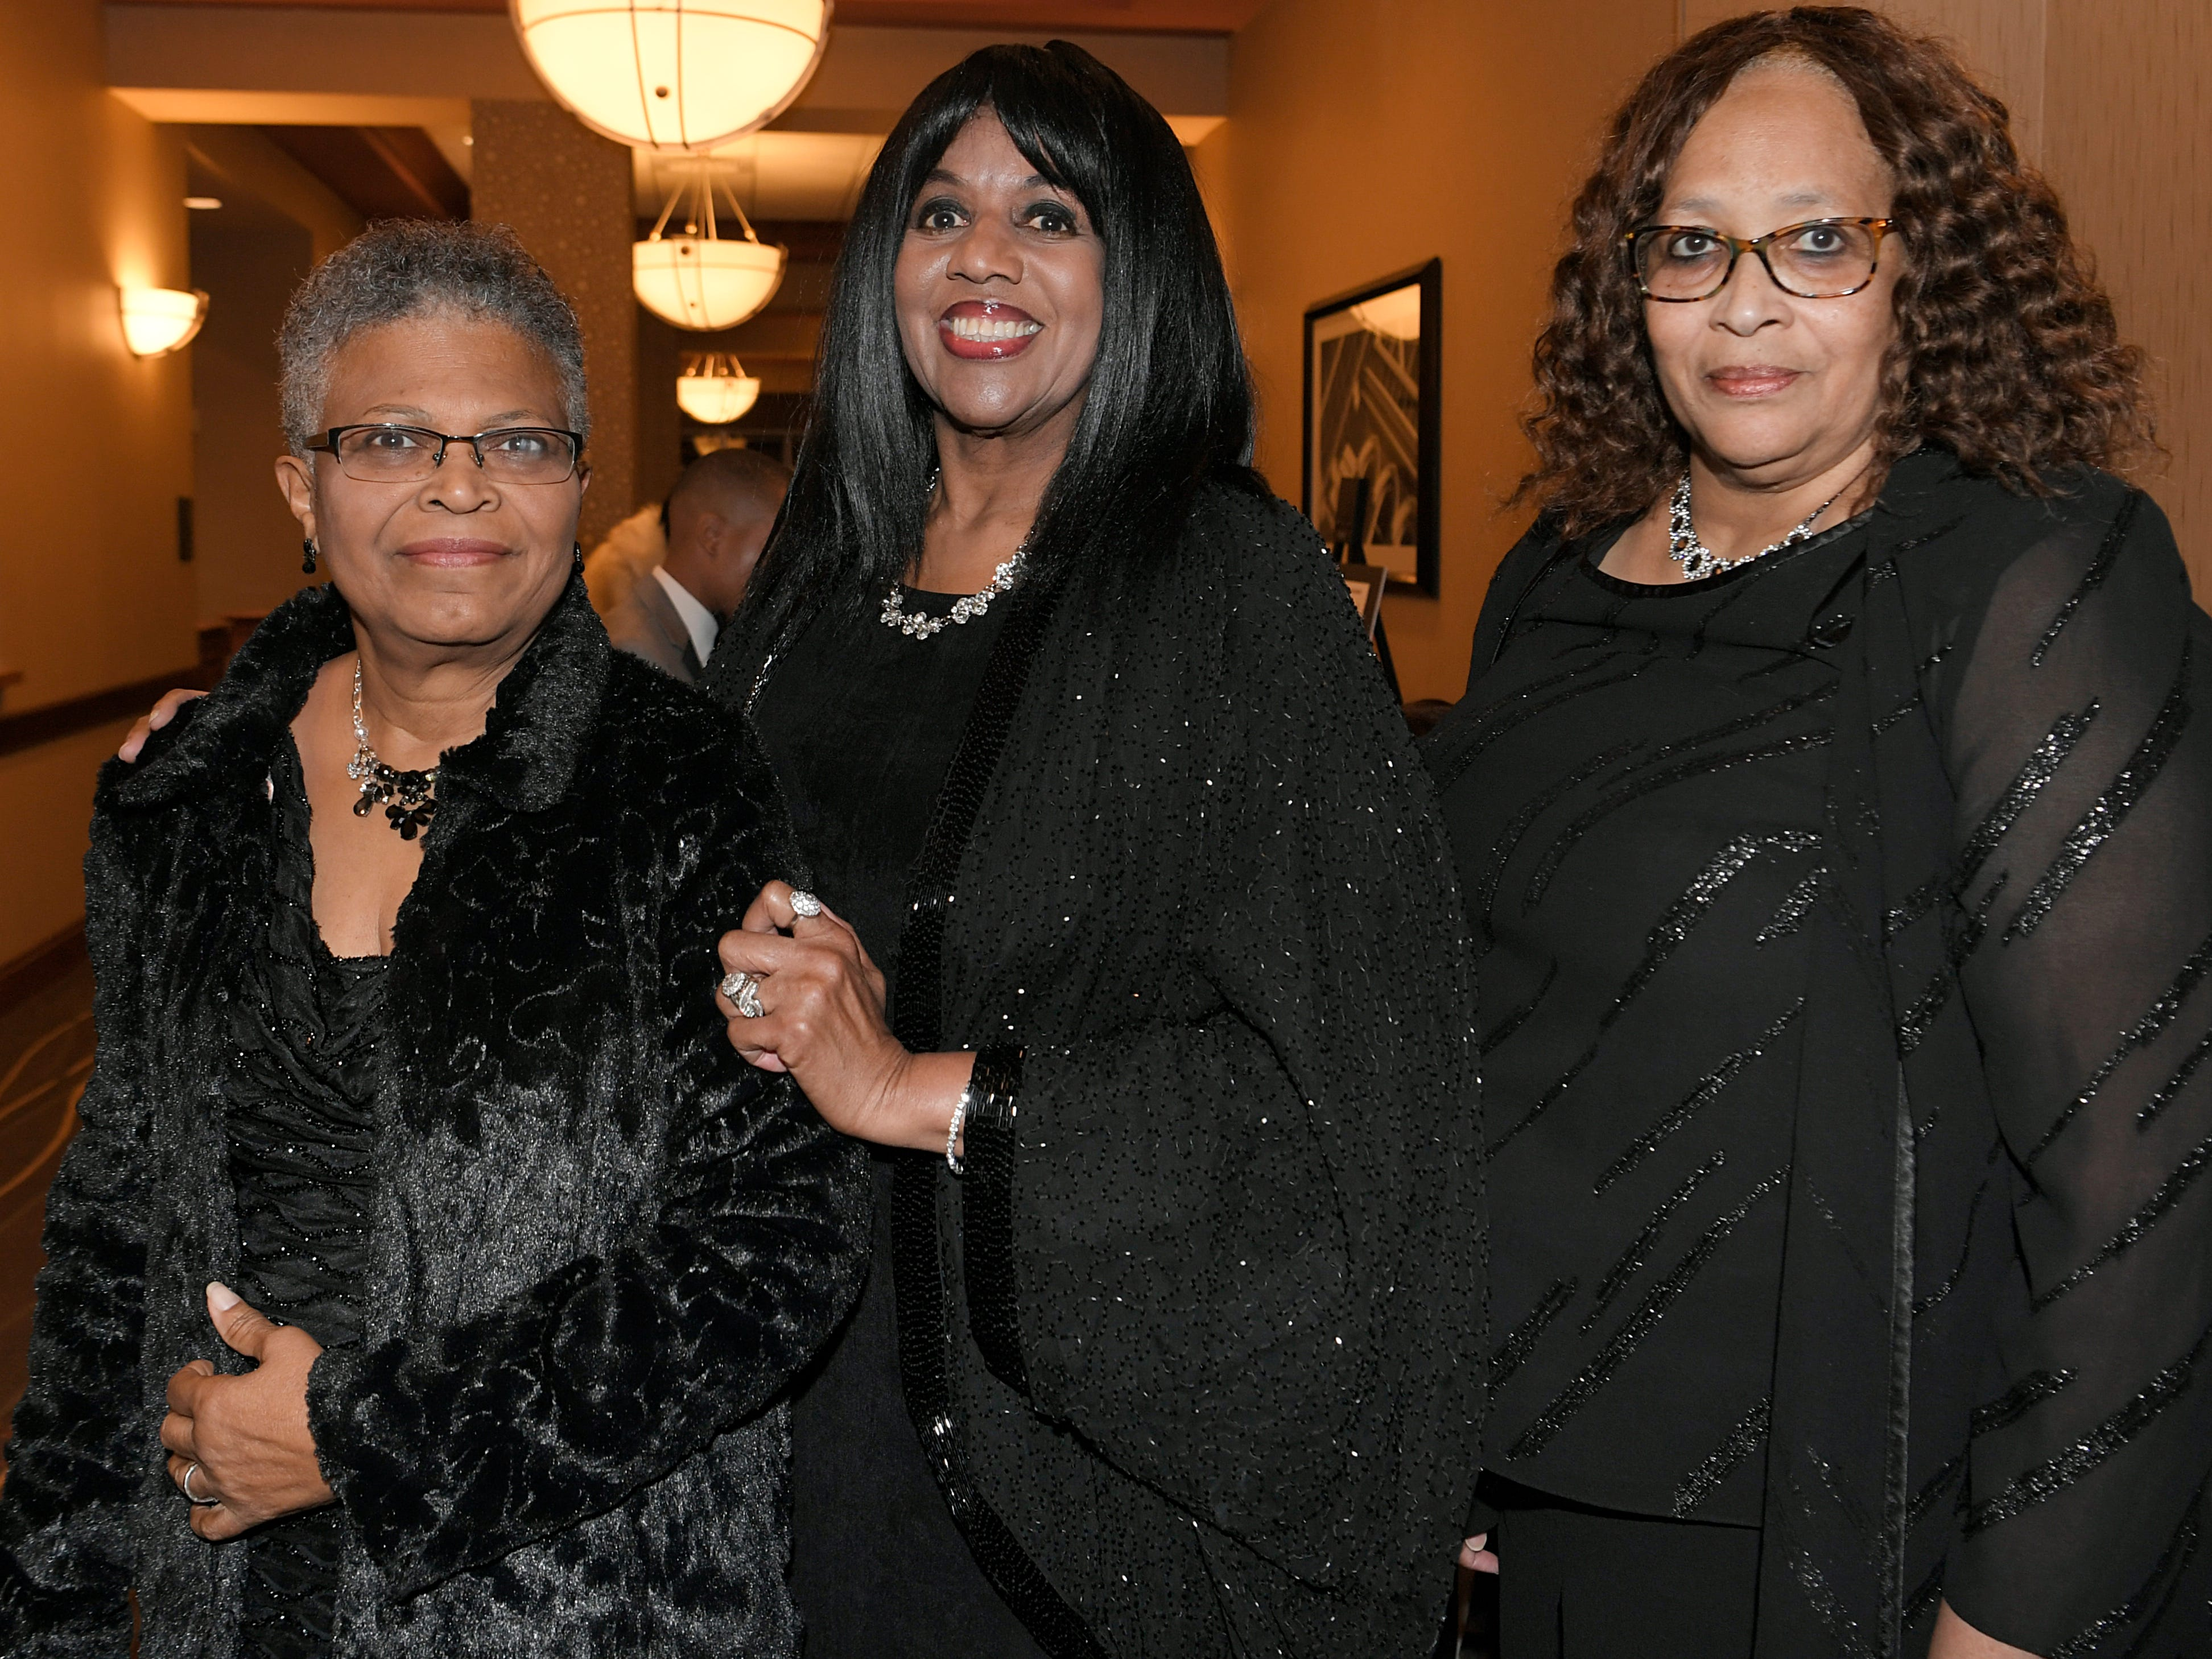 Louise Peoples Anderson, Alma McLemore and Delphine Lee-Dodson at the African American Heritage Society's 18th Annual Black Tie Affair at the Embassy Suites in Franklin on Sat., Feb. 2, 2019.